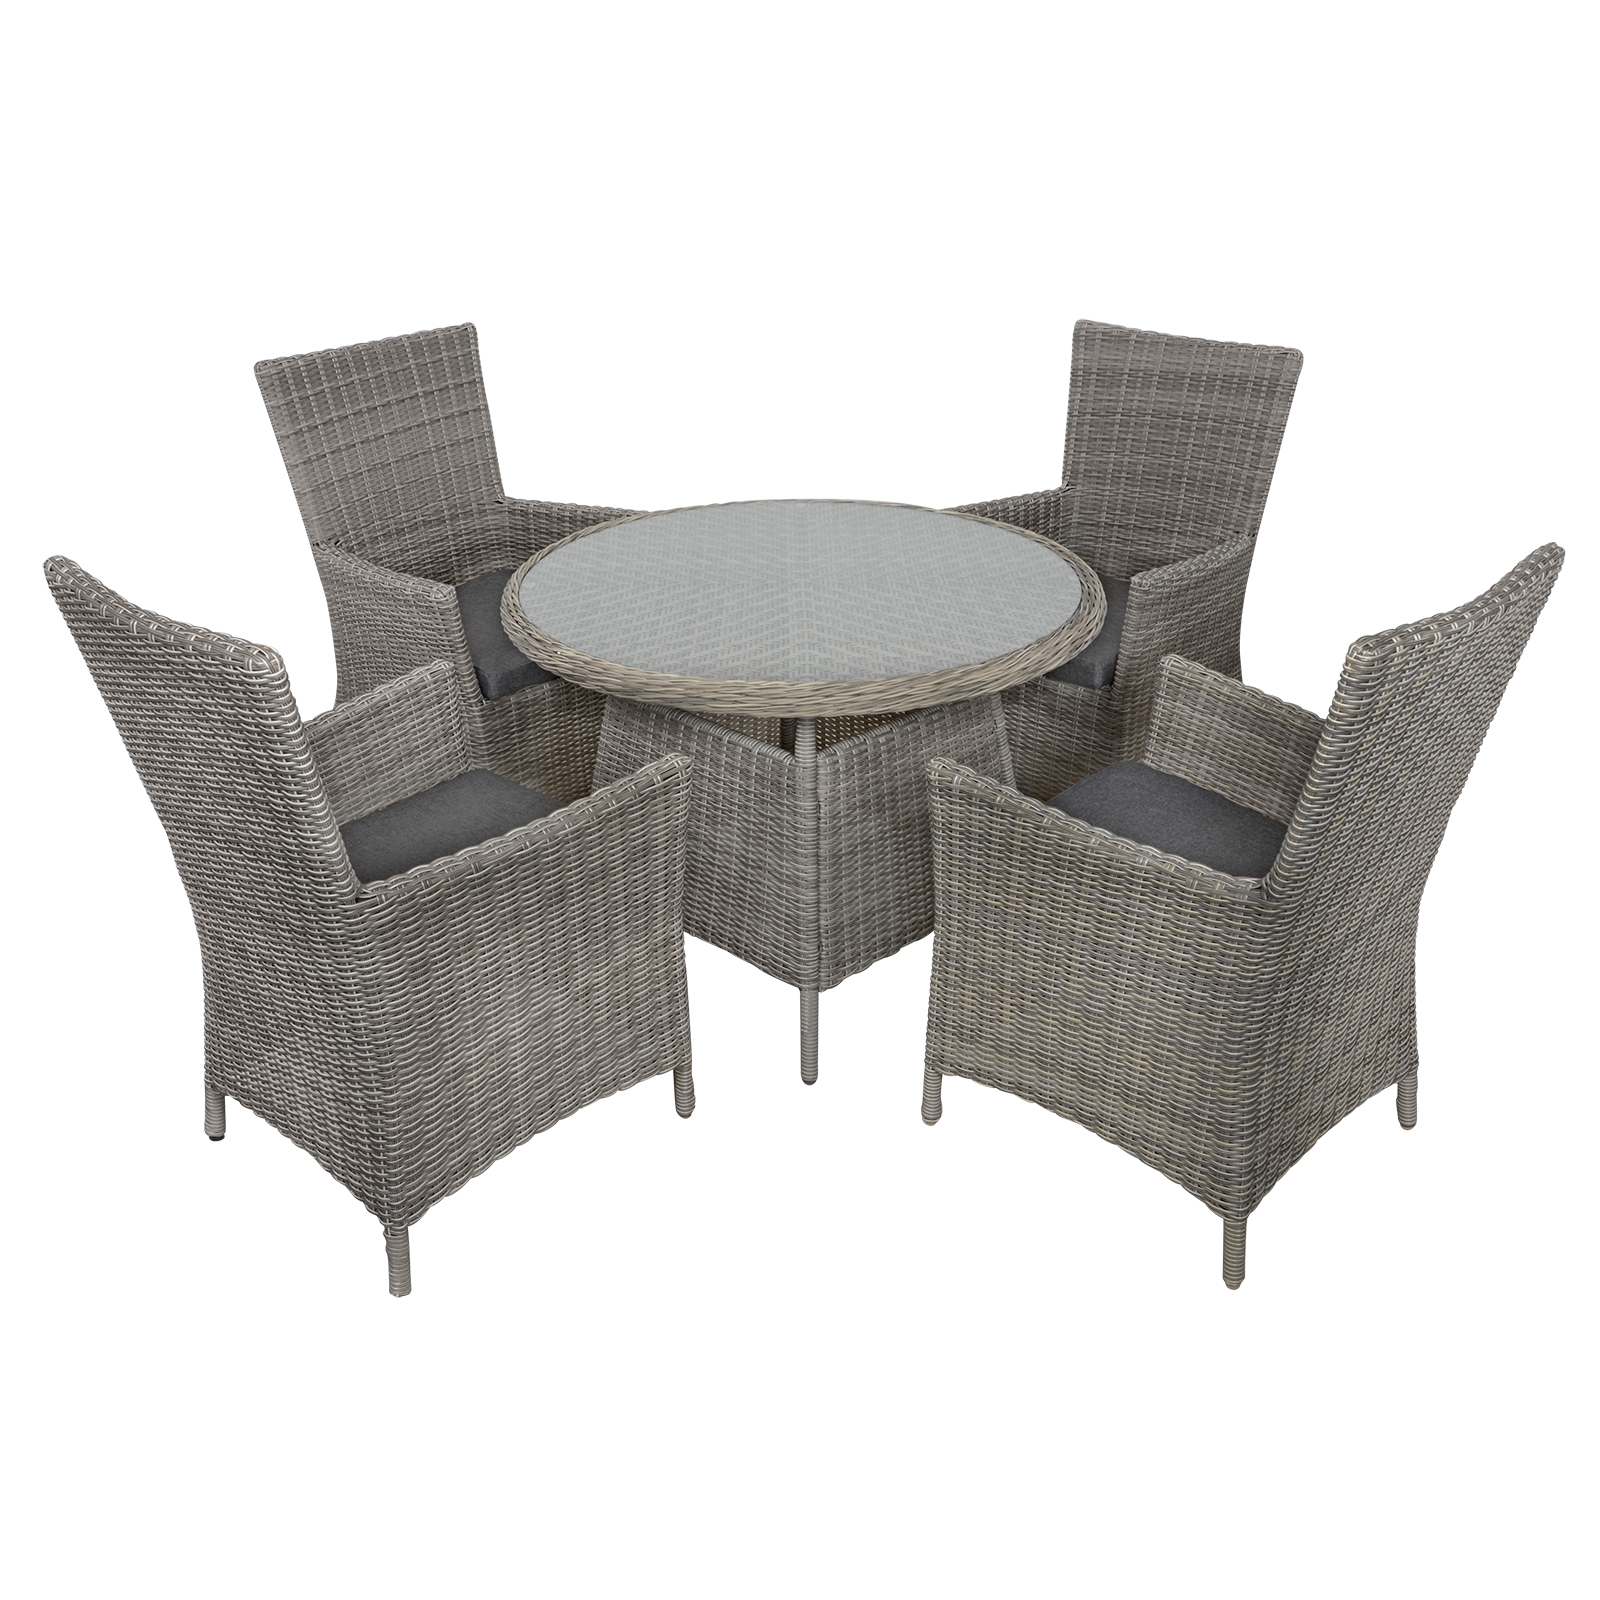 Rattan Dining Table And Chairs: Belize Rattan Wicker 4-Seat Garden Patio Furniture Dining